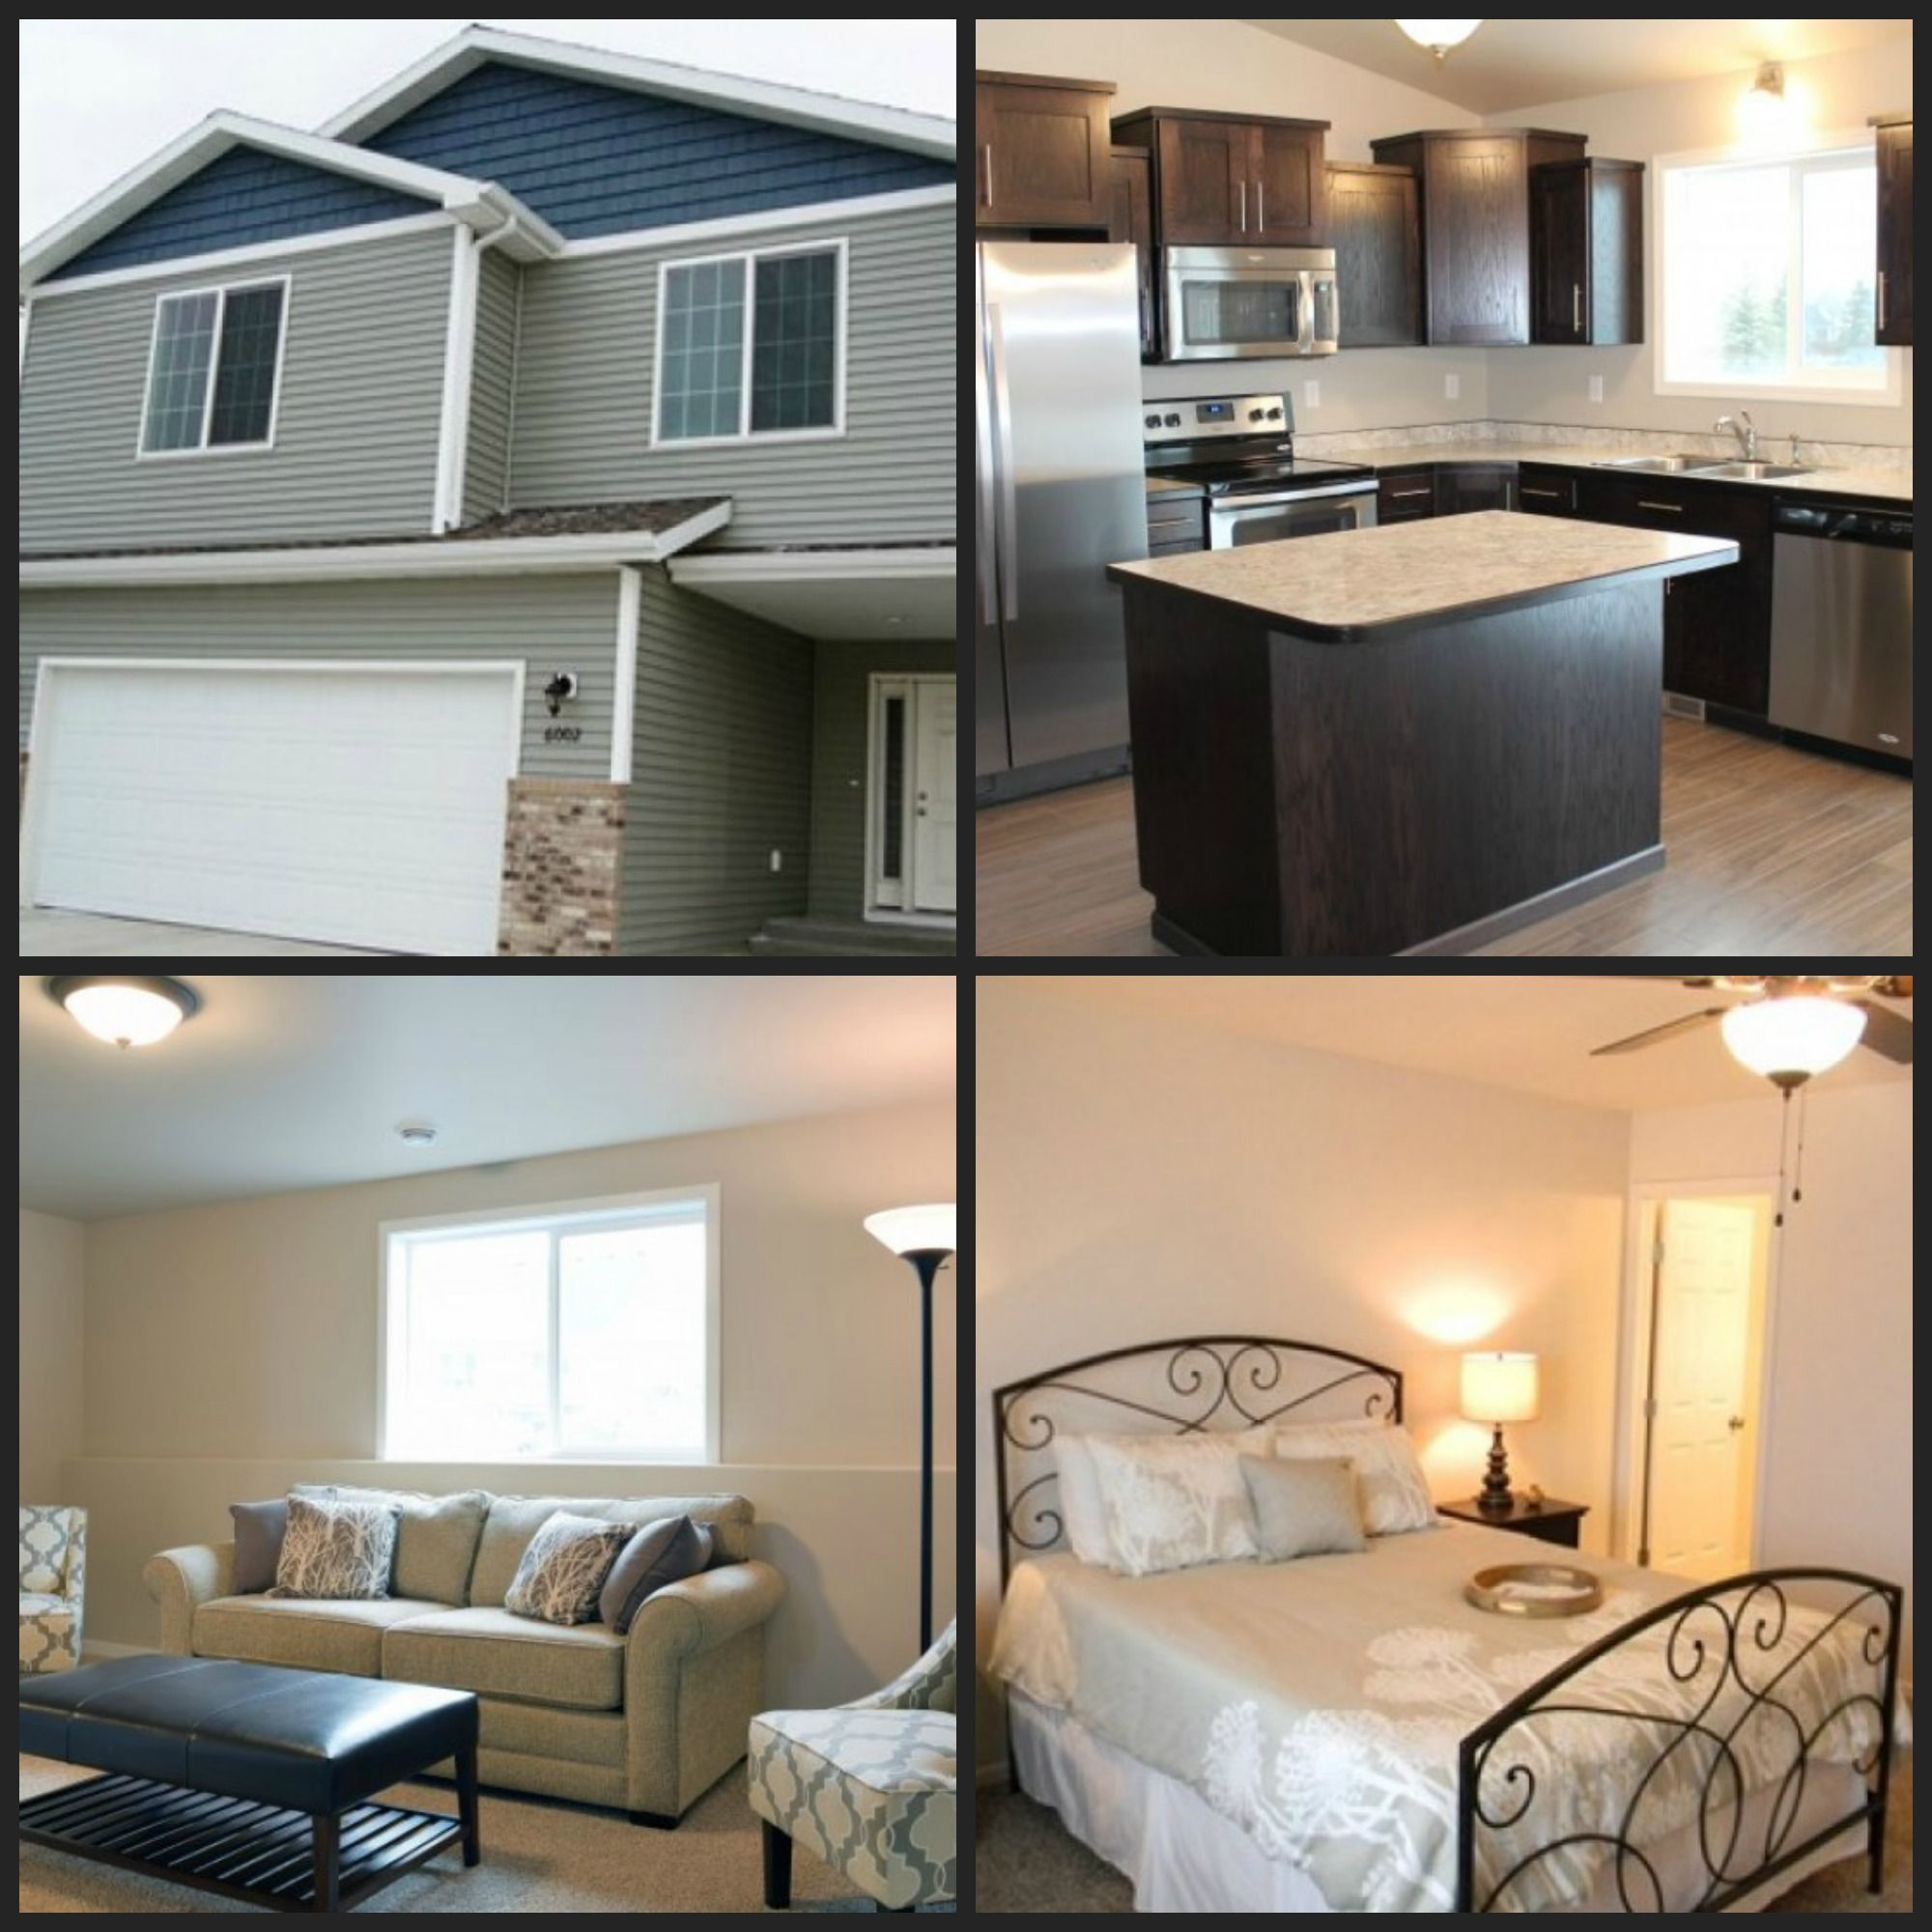 Meridian Property Management, LLC in Fargo, ND | (701) 212-1790 3 ...